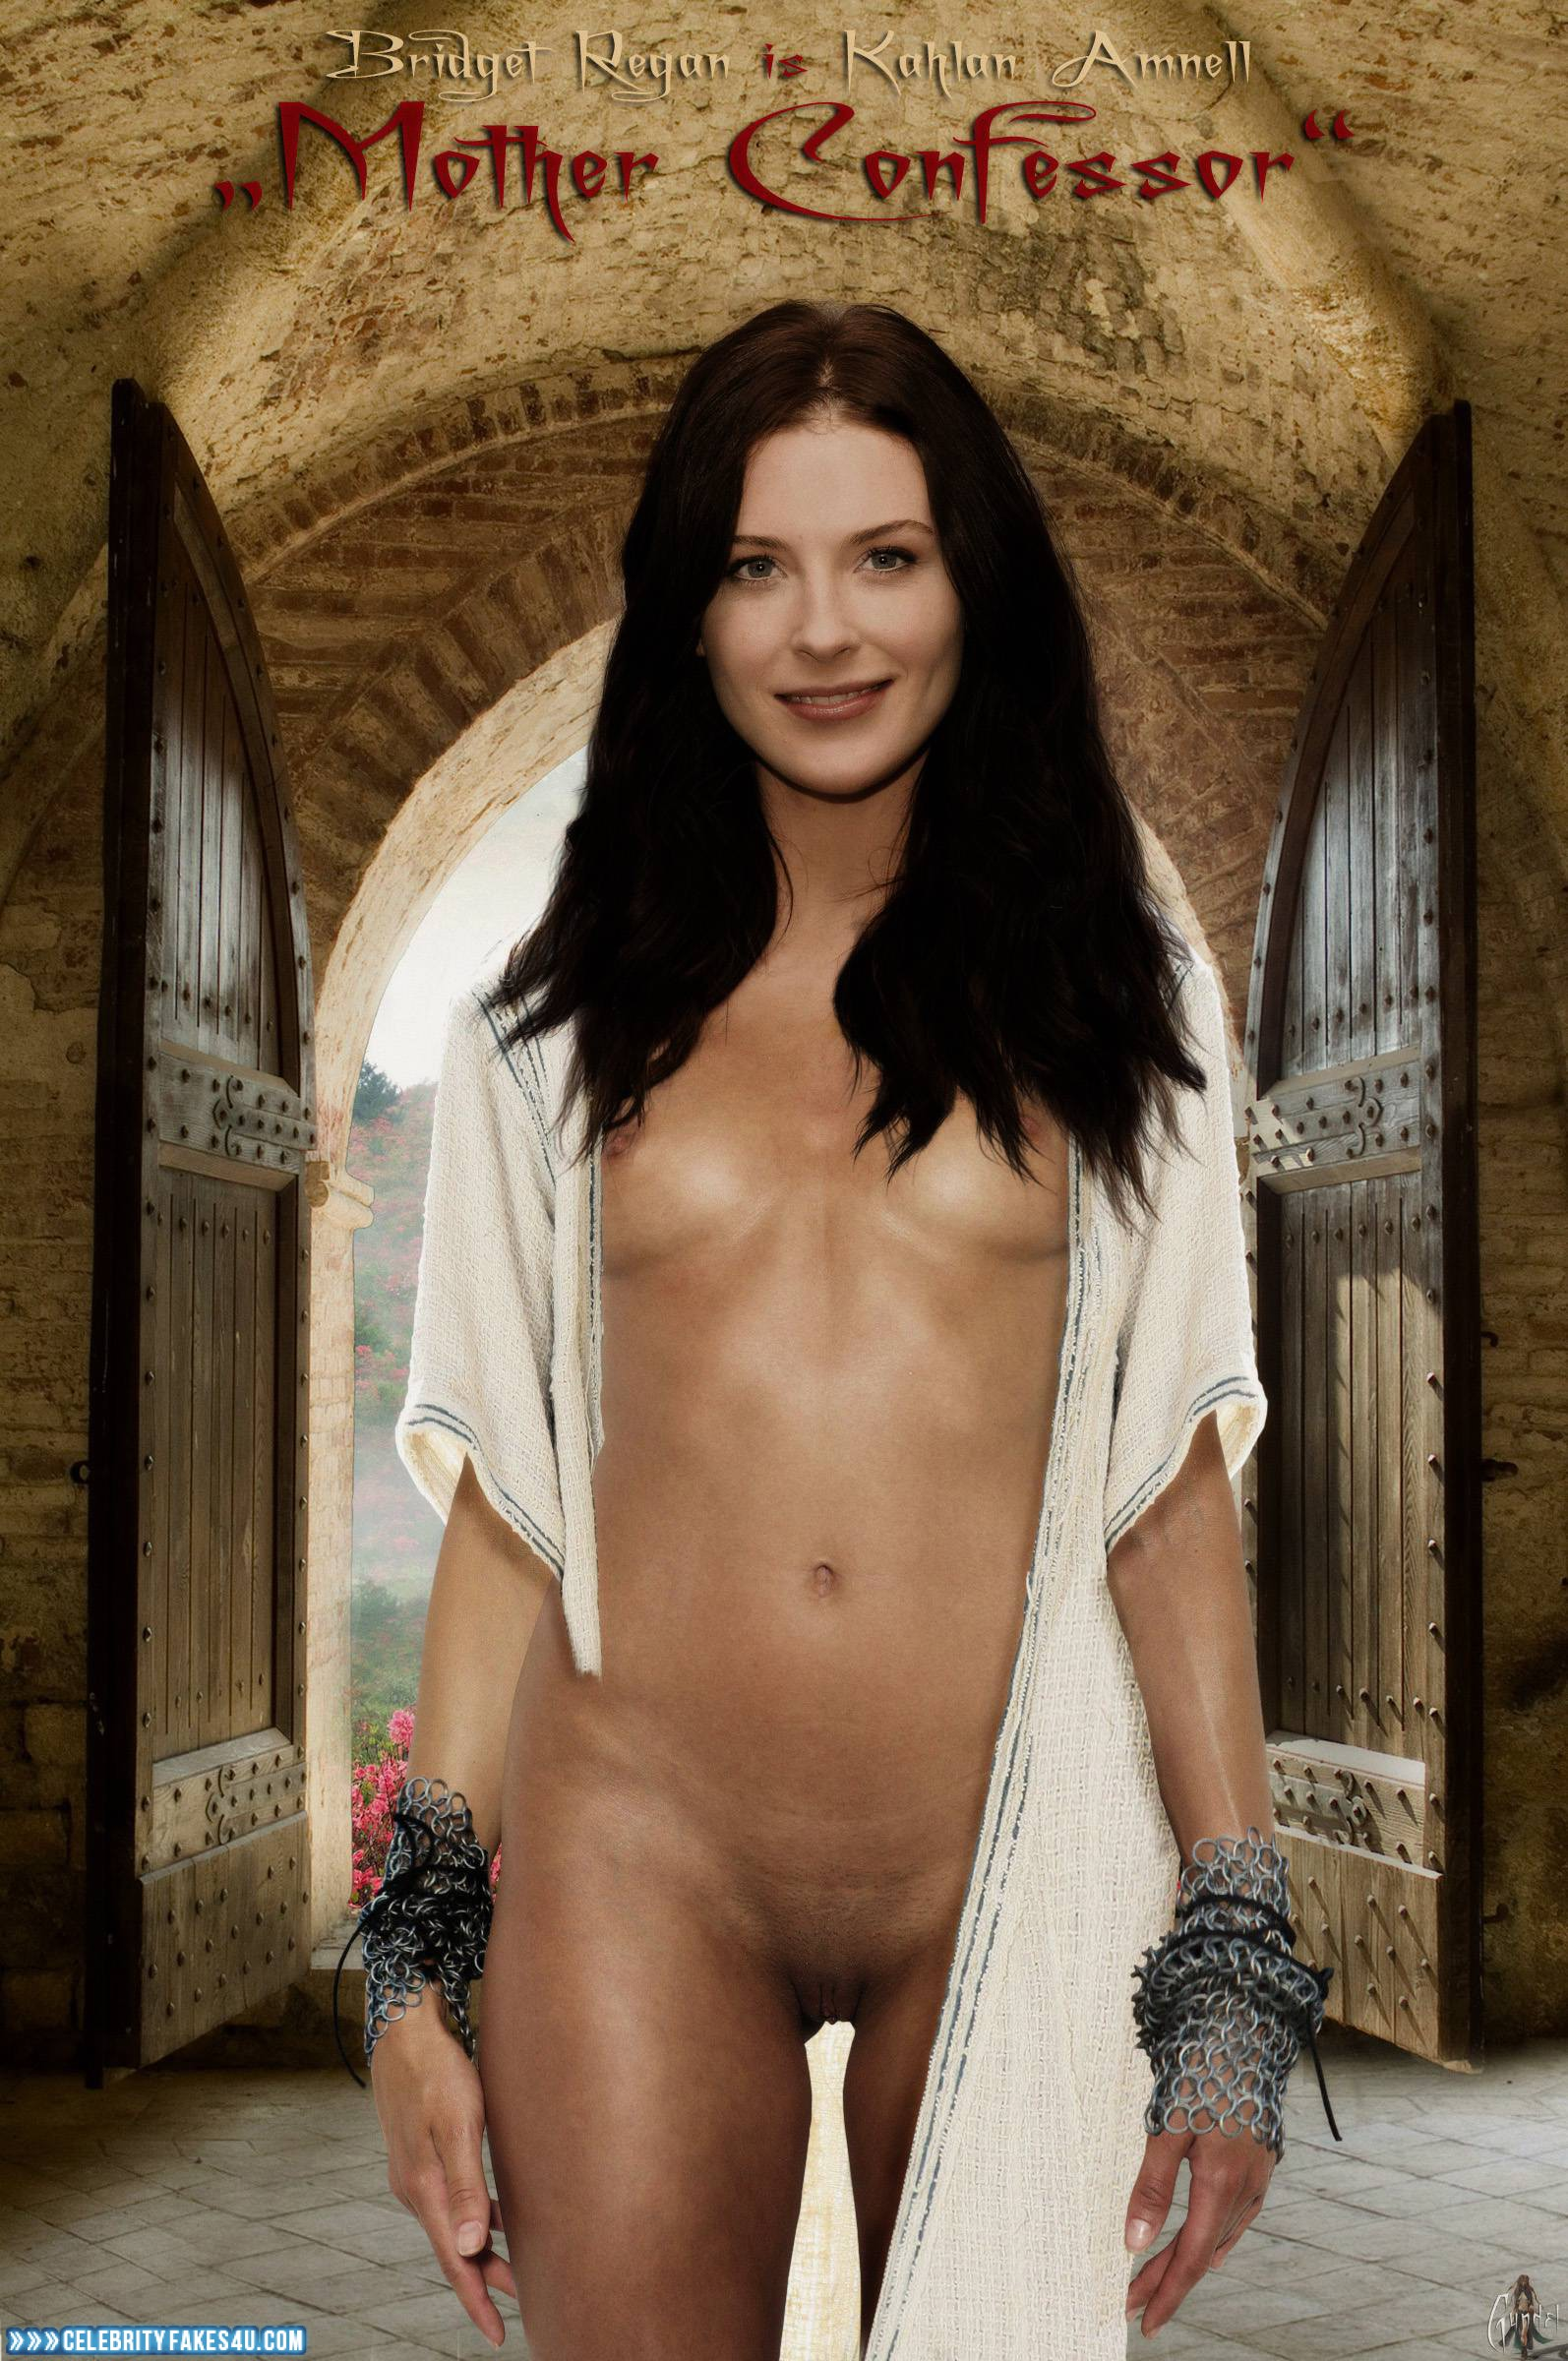 Bridget Regan Gallery Porno 26